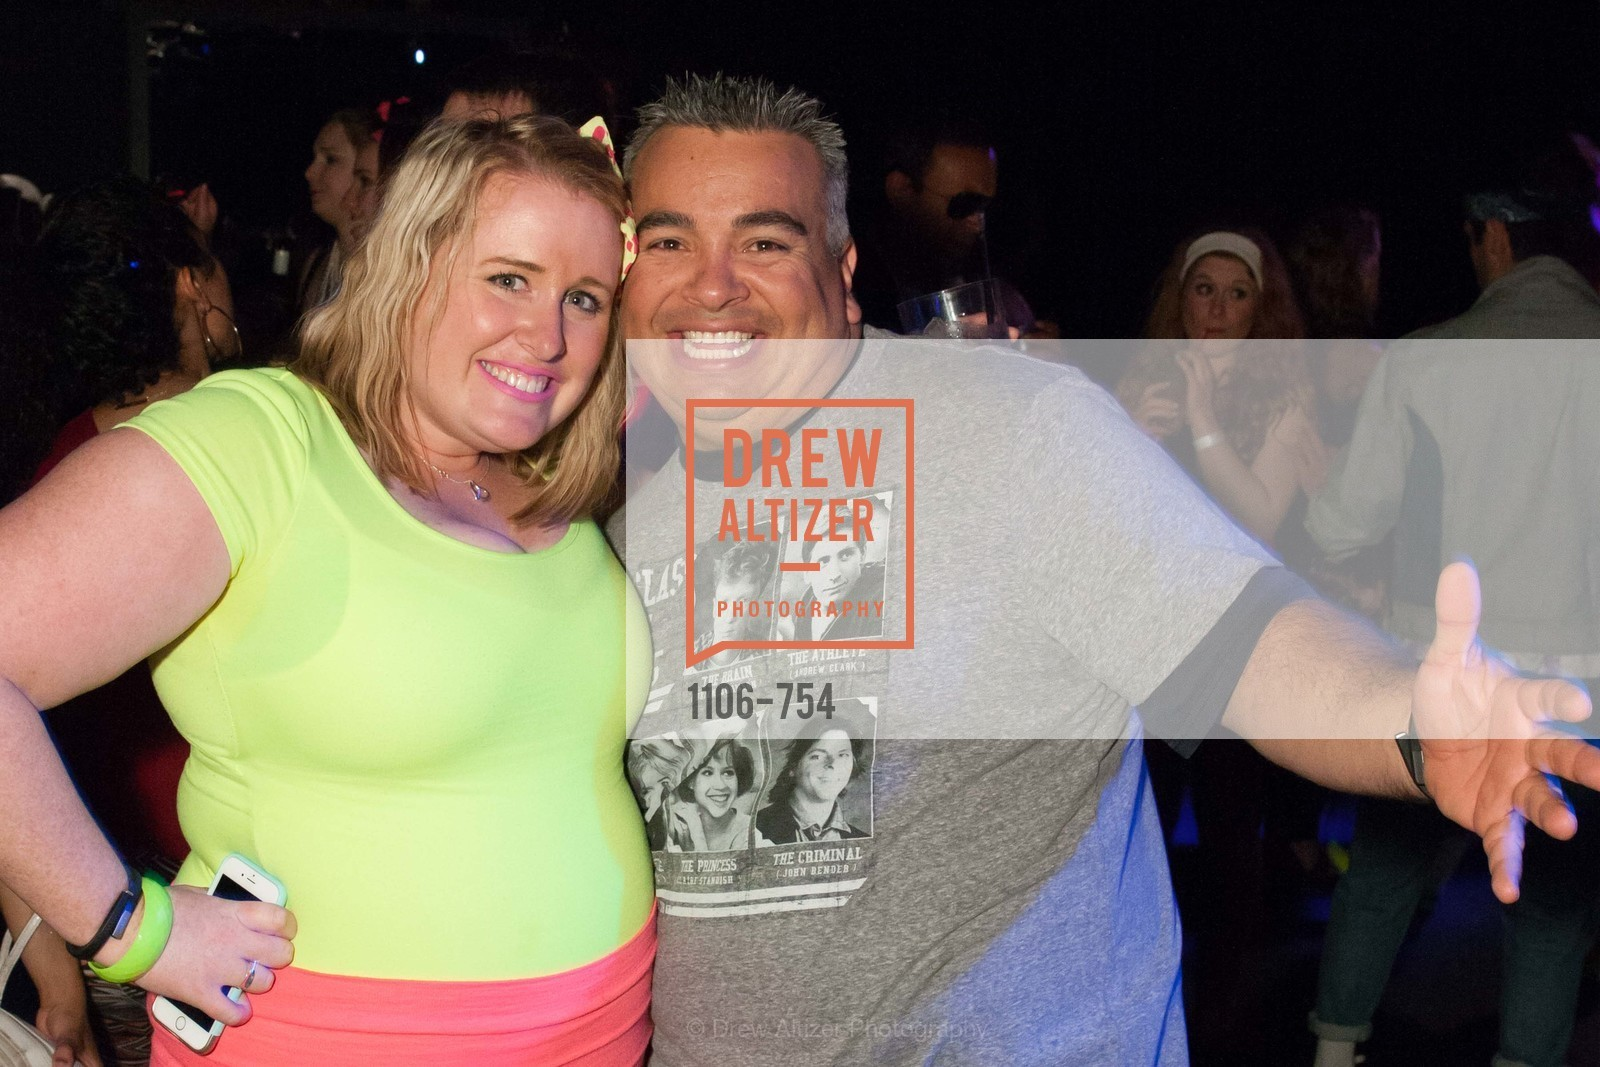 Eryn Golden, Andre Velasquez, SPINSTERS OF SAN FRANCISCO Party Like It's 1985 Charity Party, US, May 29th, 2015,Drew Altizer, Drew Altizer Photography, full-service agency, private events, San Francisco photographer, photographer california